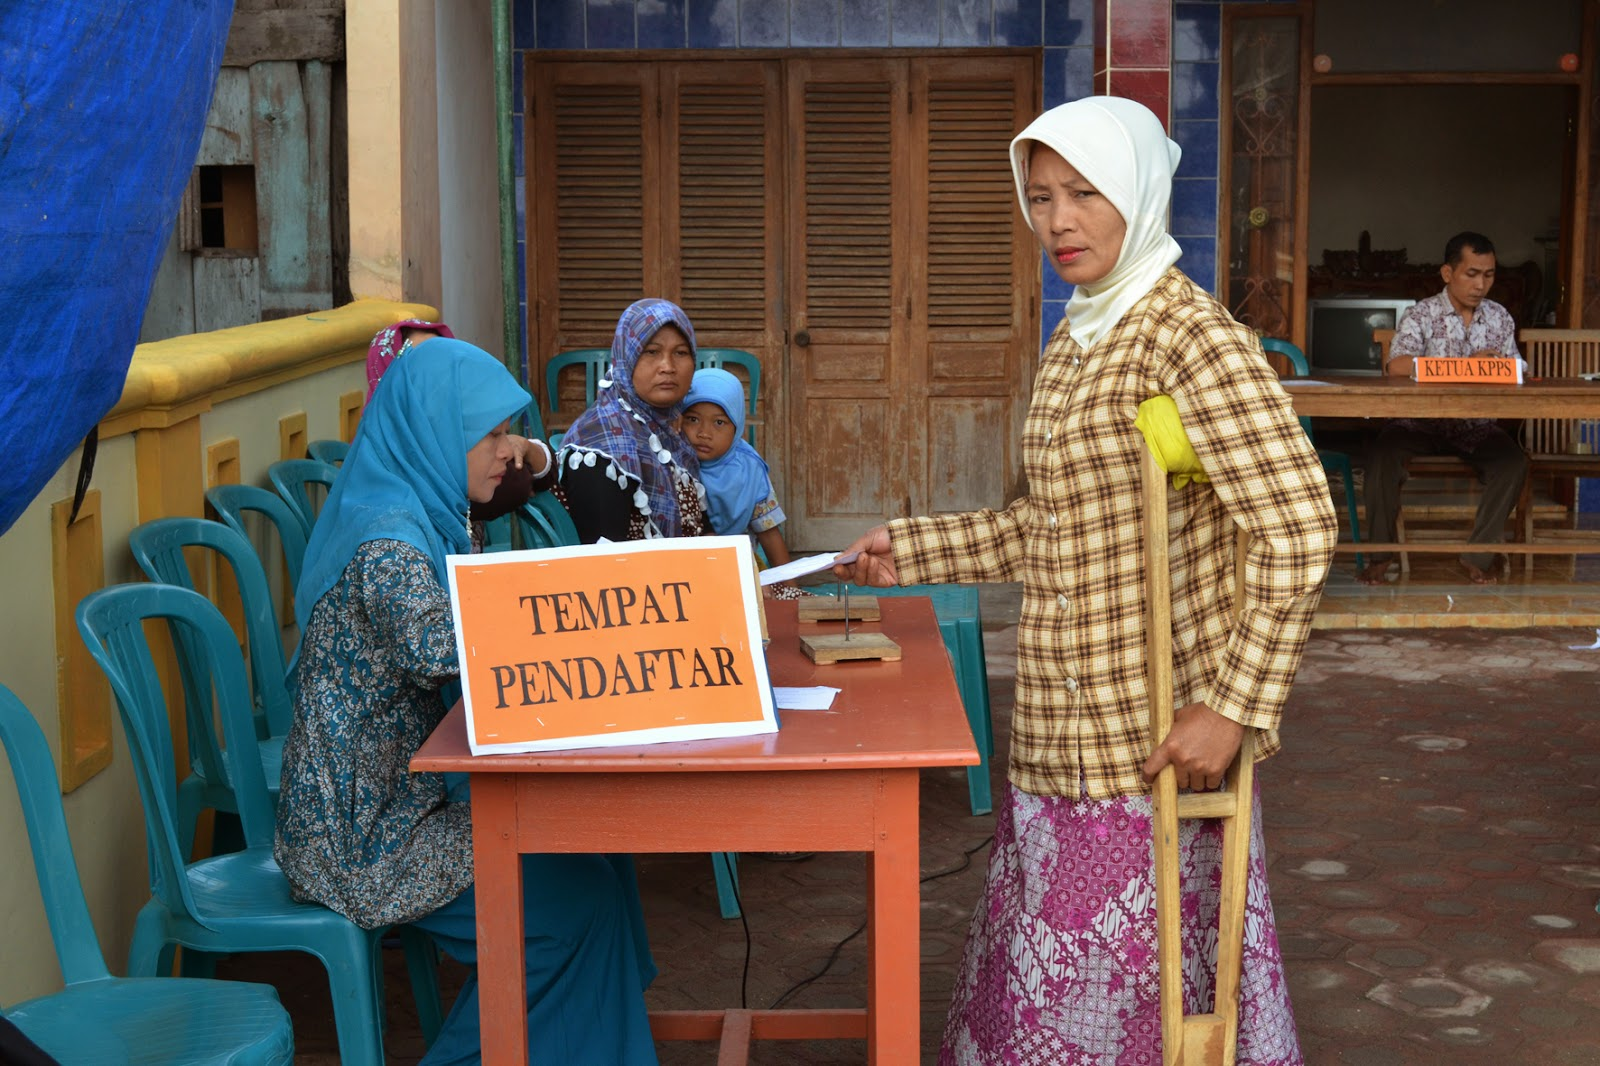 Phisicaly impaired viter is reistaring to vote in Central Java